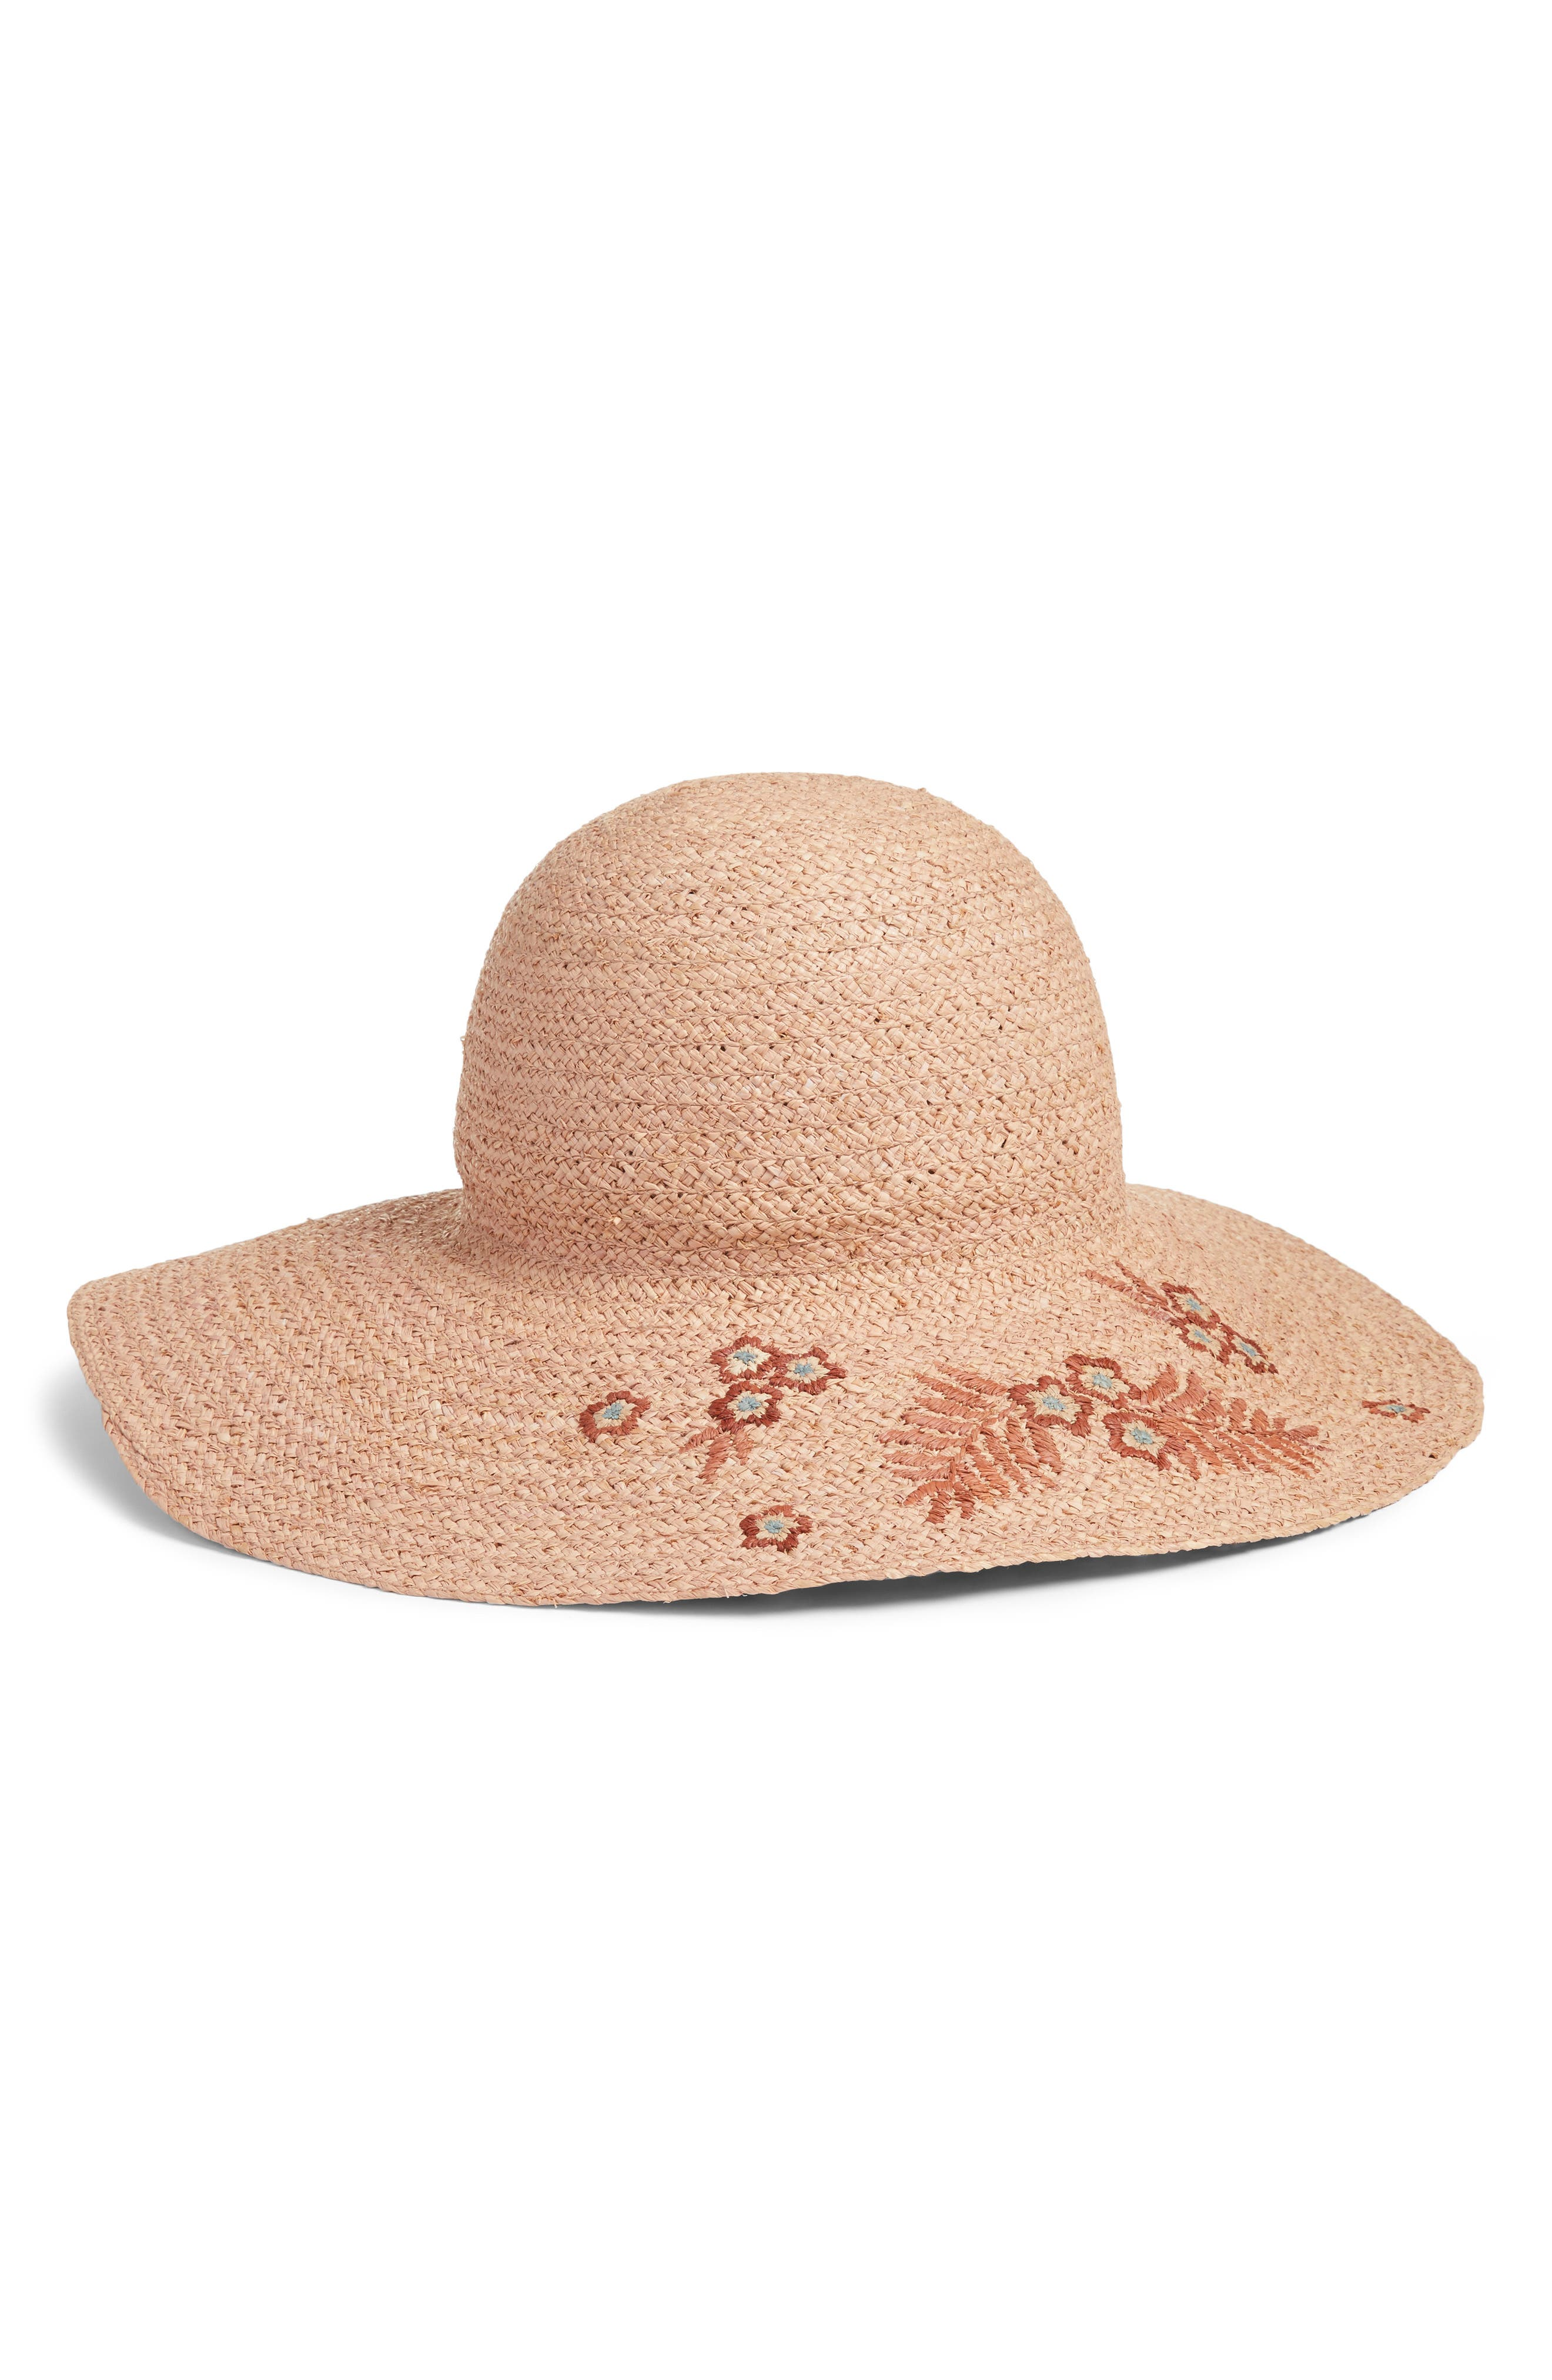 Flower Embroidered Raffia Hat,                             Main thumbnail 1, color,                             021